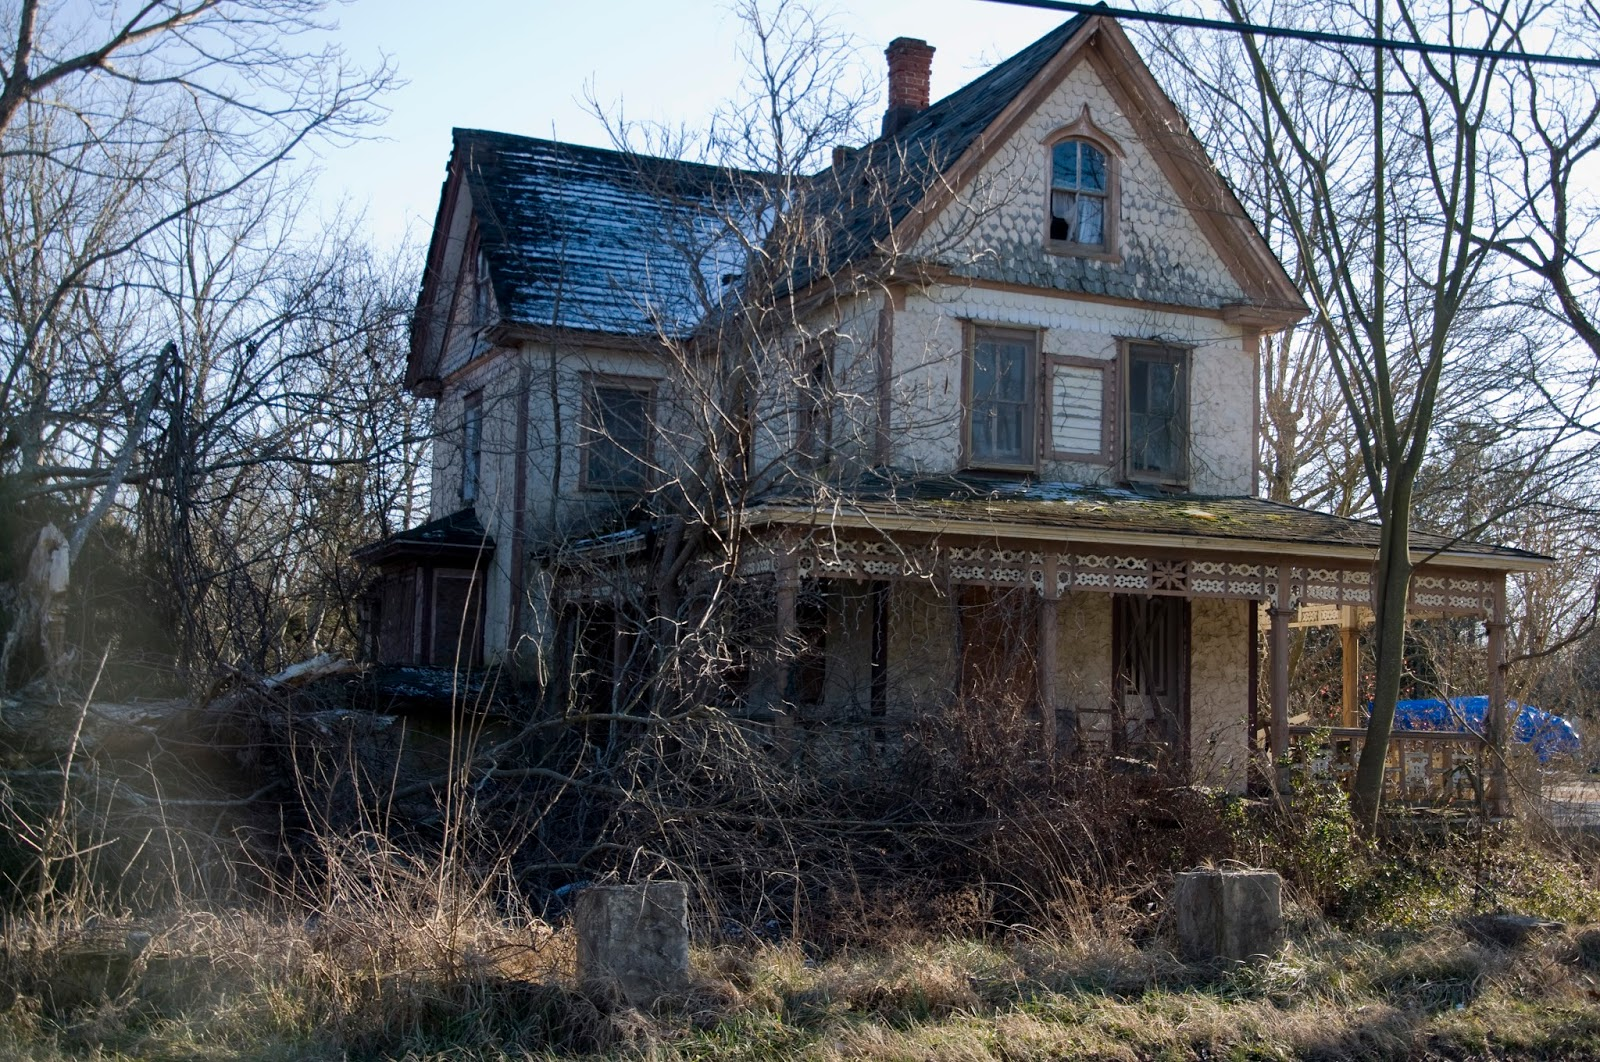 haunted houses scary horror abandoned hill creepy places haunting story casas rent monsters spooky homes ghost abandonadas buildings looking fairiegoodmother